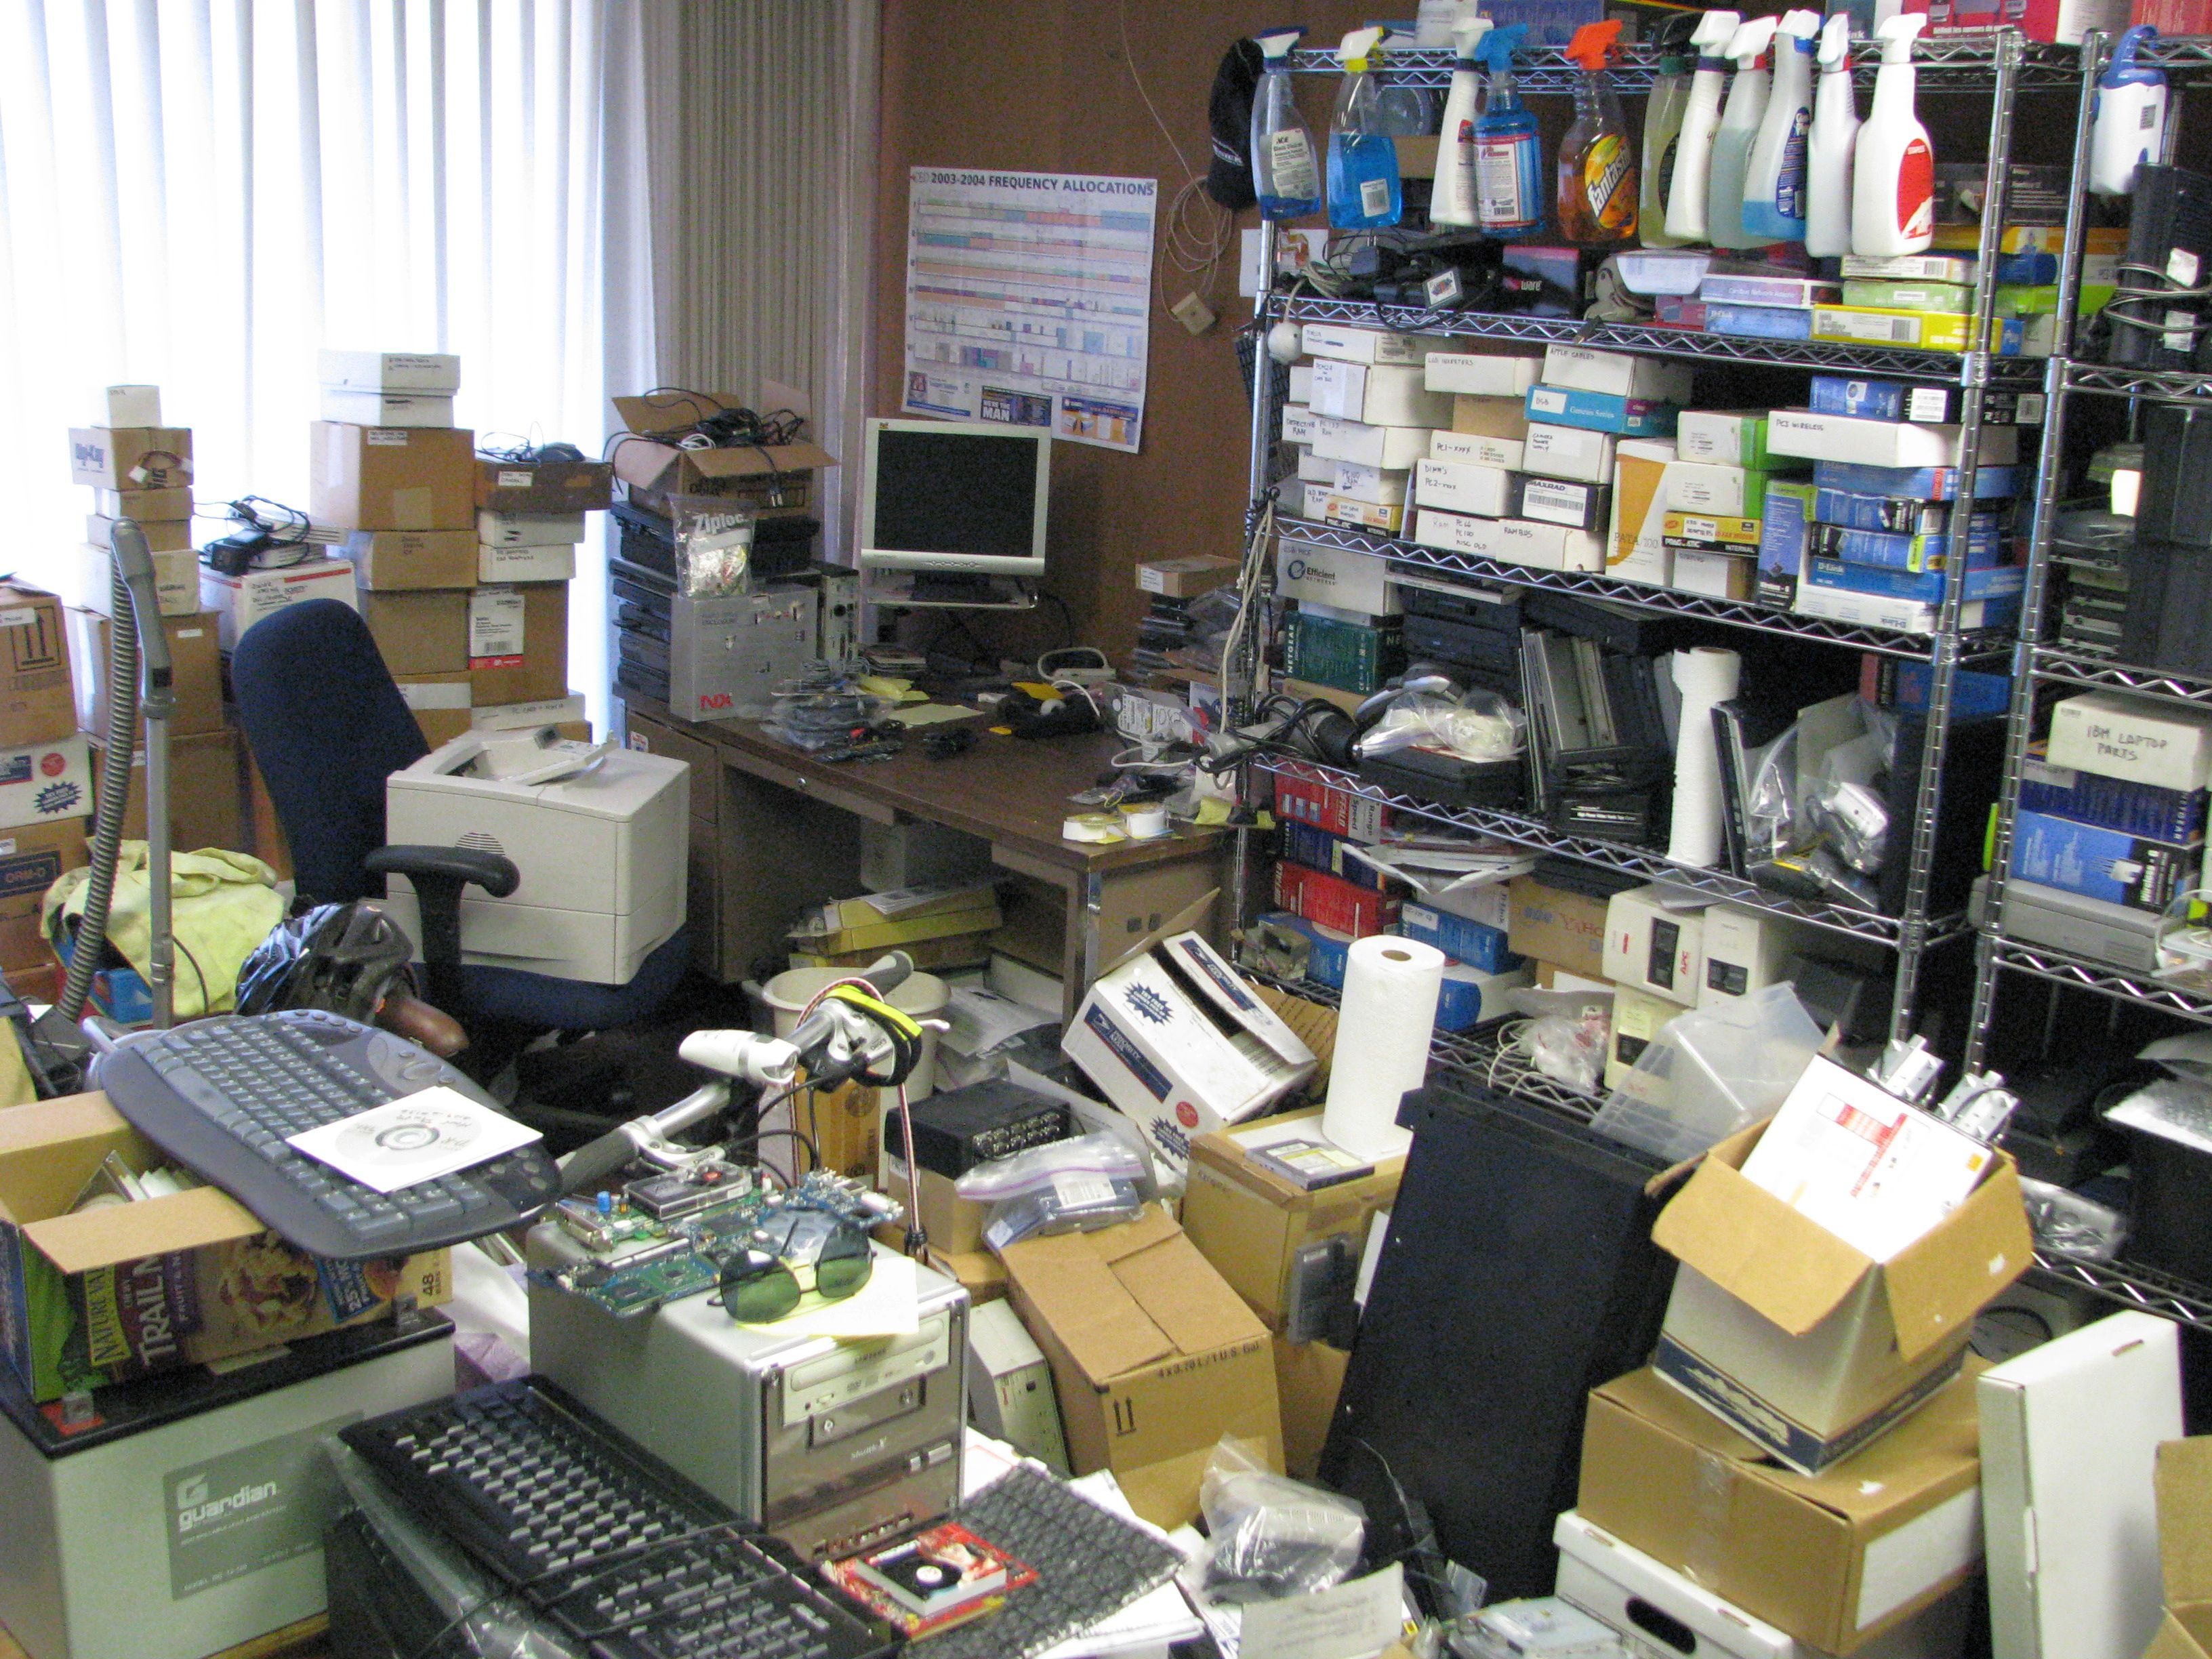 Http 802 11junk com jeffl pics office office mess 03